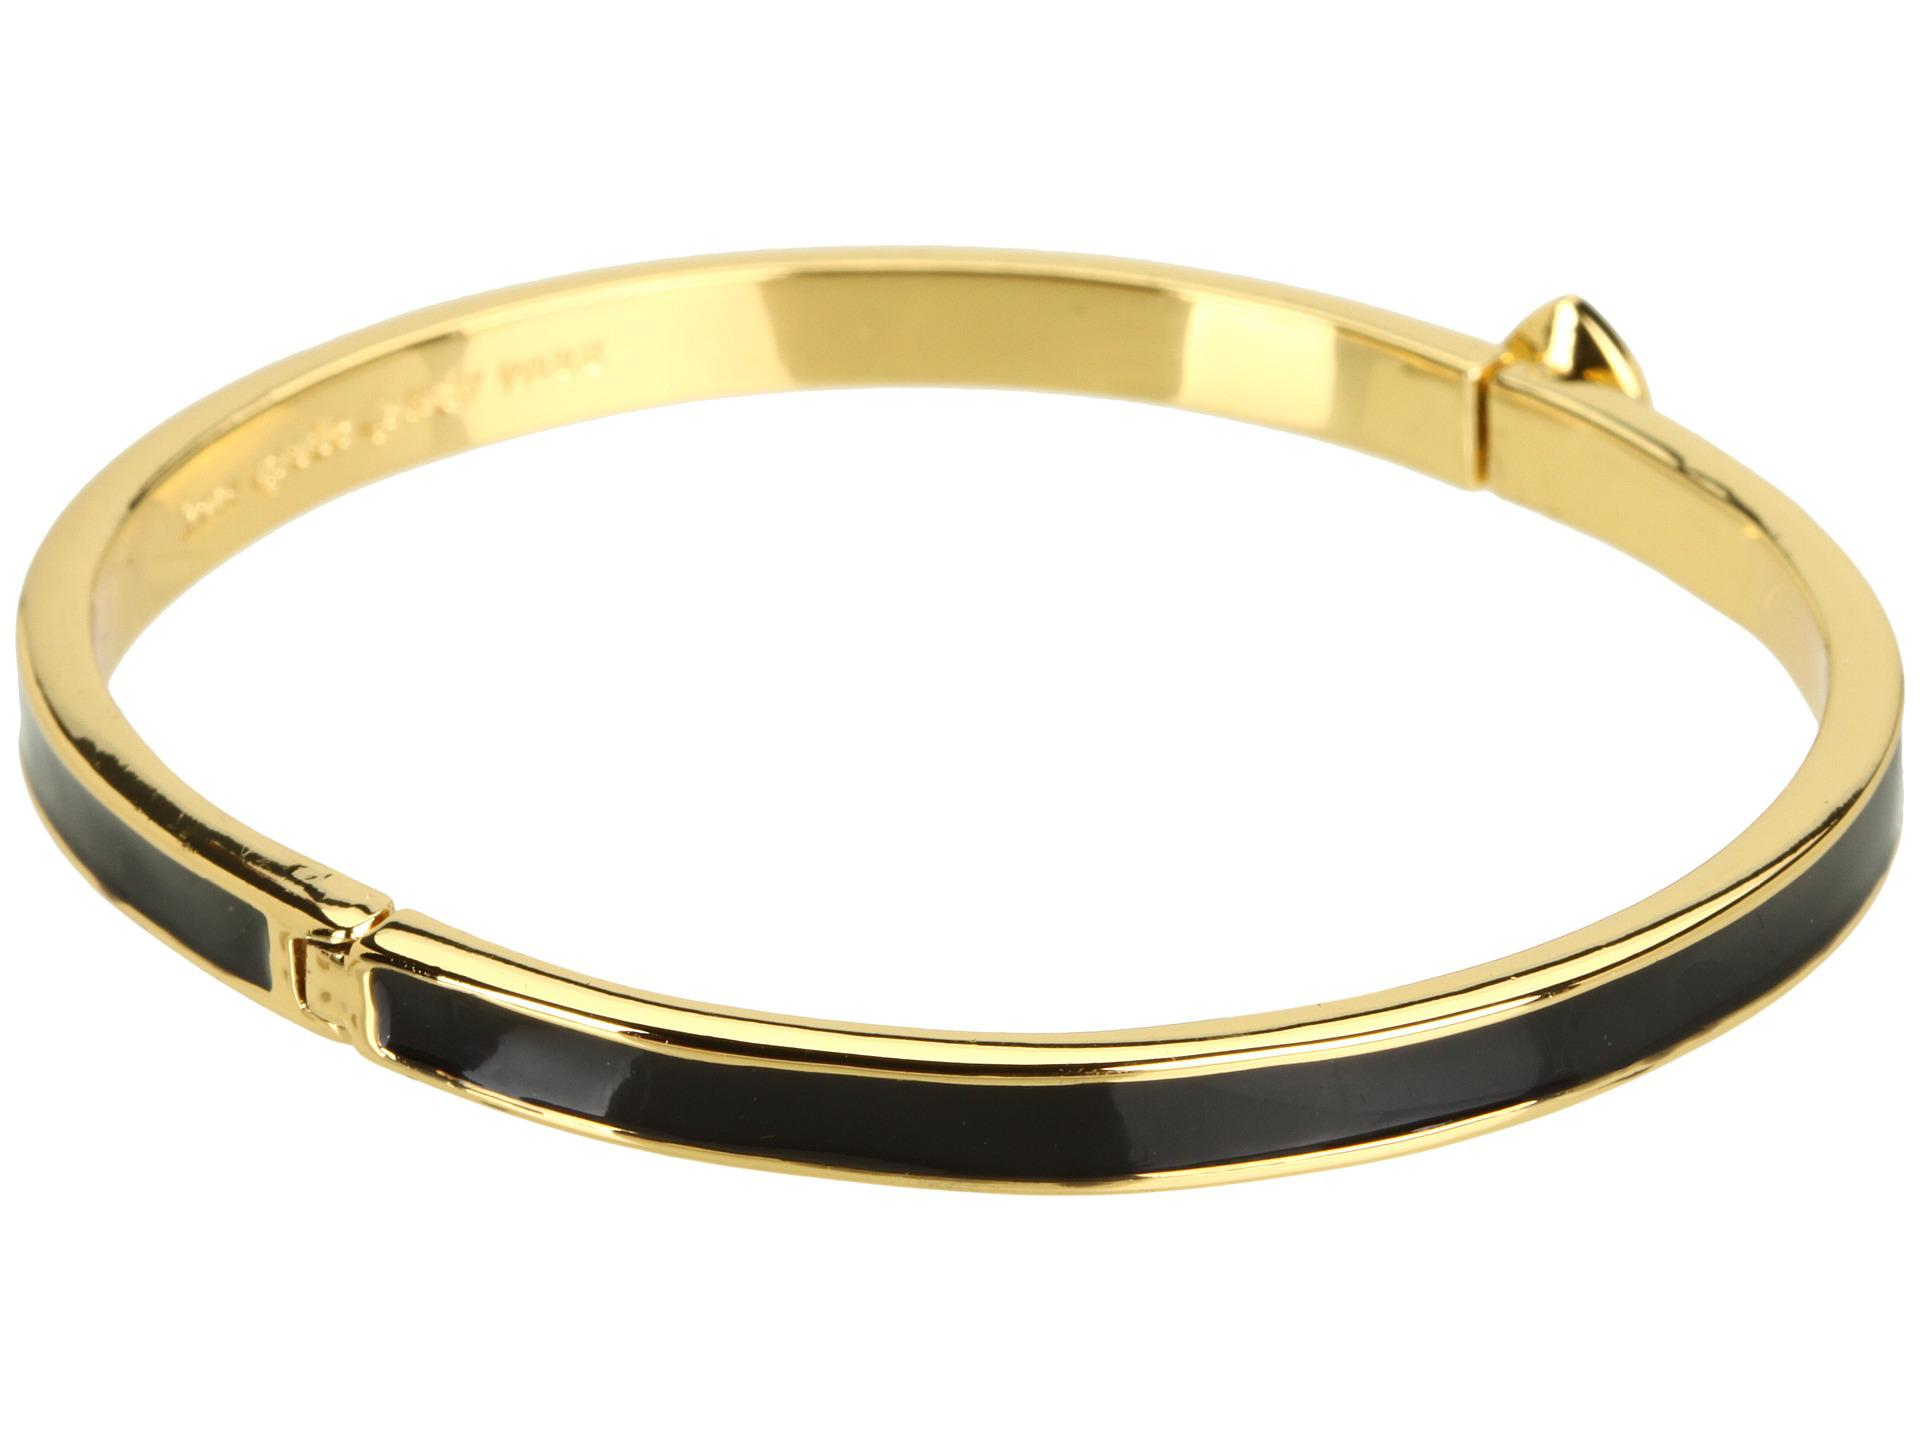 gold acrylic engravable addiction prayer s bangles bracelet eve lord lords bangle